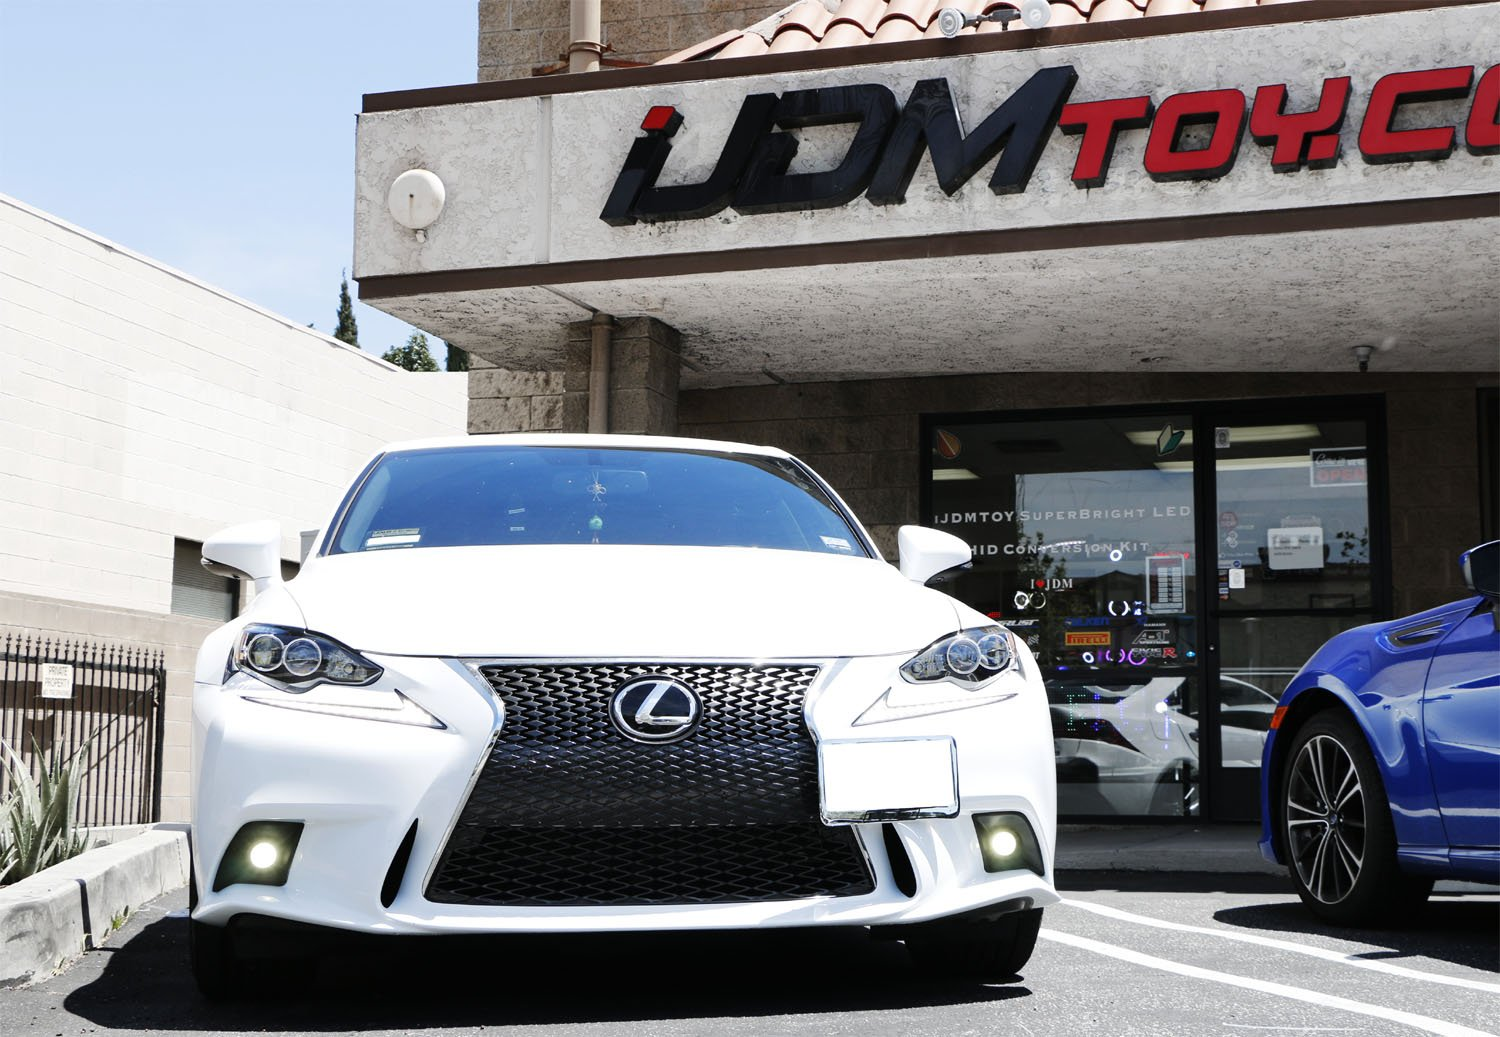 iJDMTOY Lexus F-Sport 15W High Power Projector LED Fog Light Kit For 2014-2016 Lexus IS200t IS250 IS300 IS350, 6000K Xenon White by iJDMTOY (Image #4)